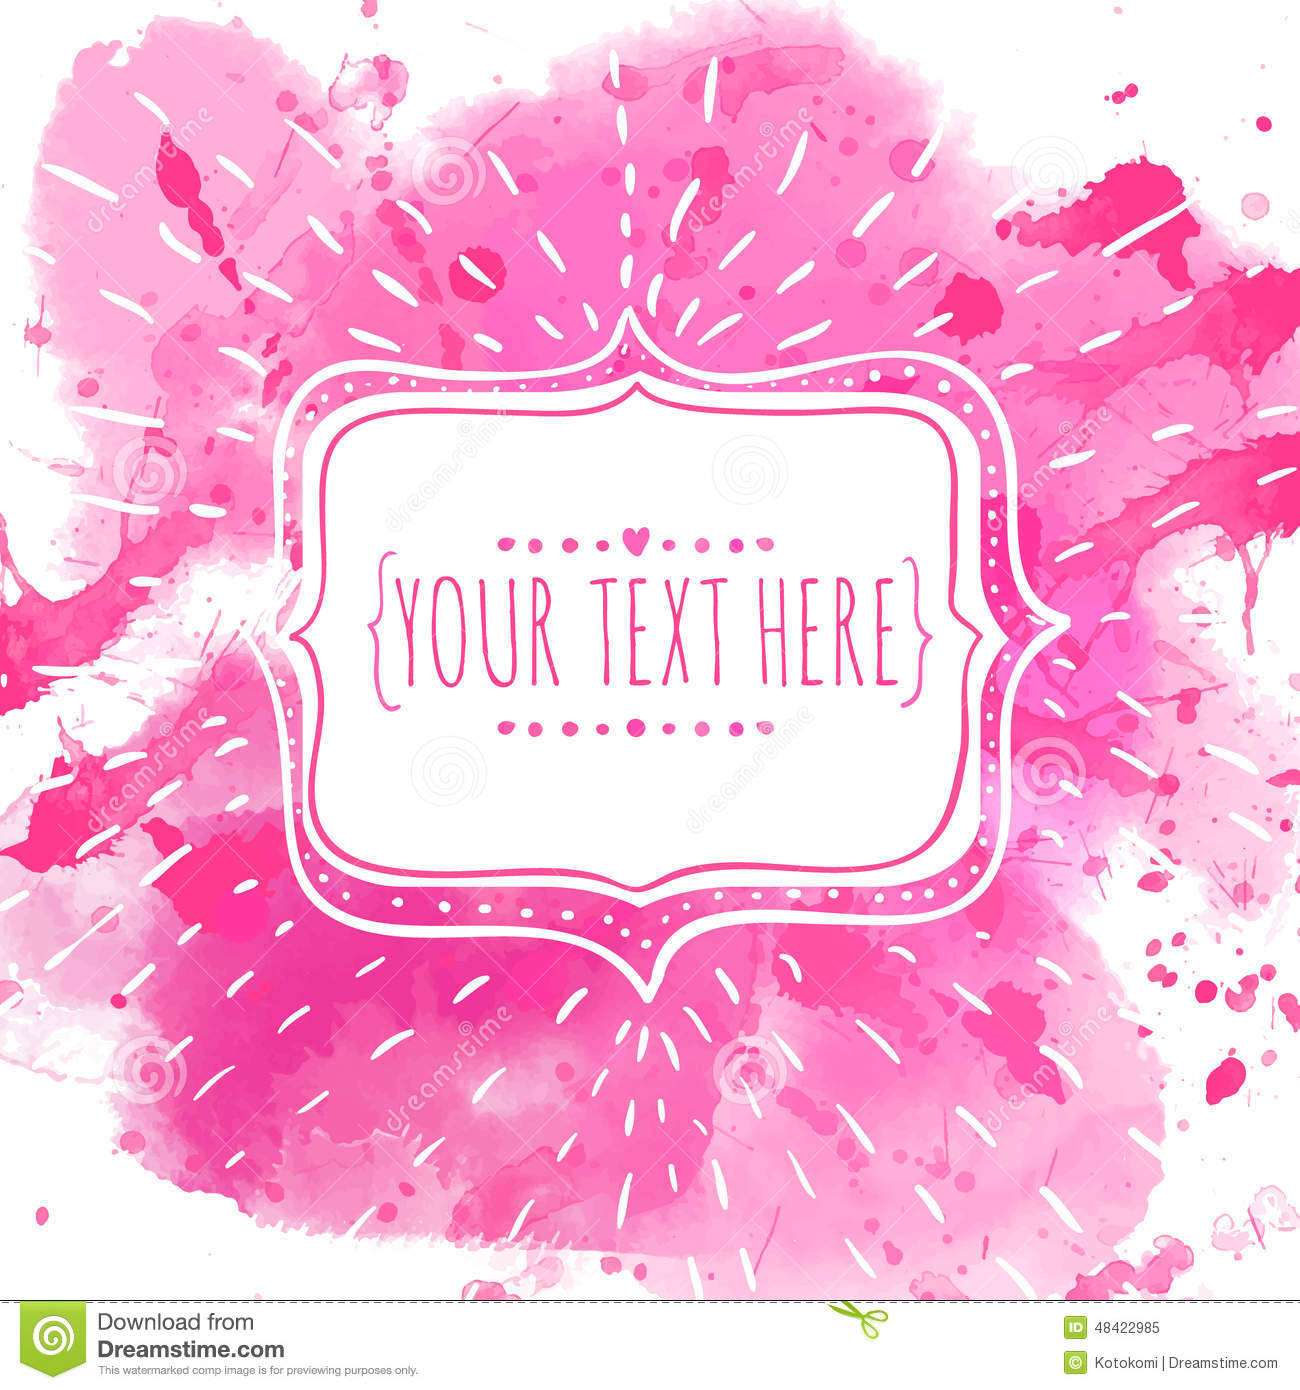 Download White Hand Drawn Frame With Doodle Bird. Pink Watercolor Splash  Background. Artistic Design